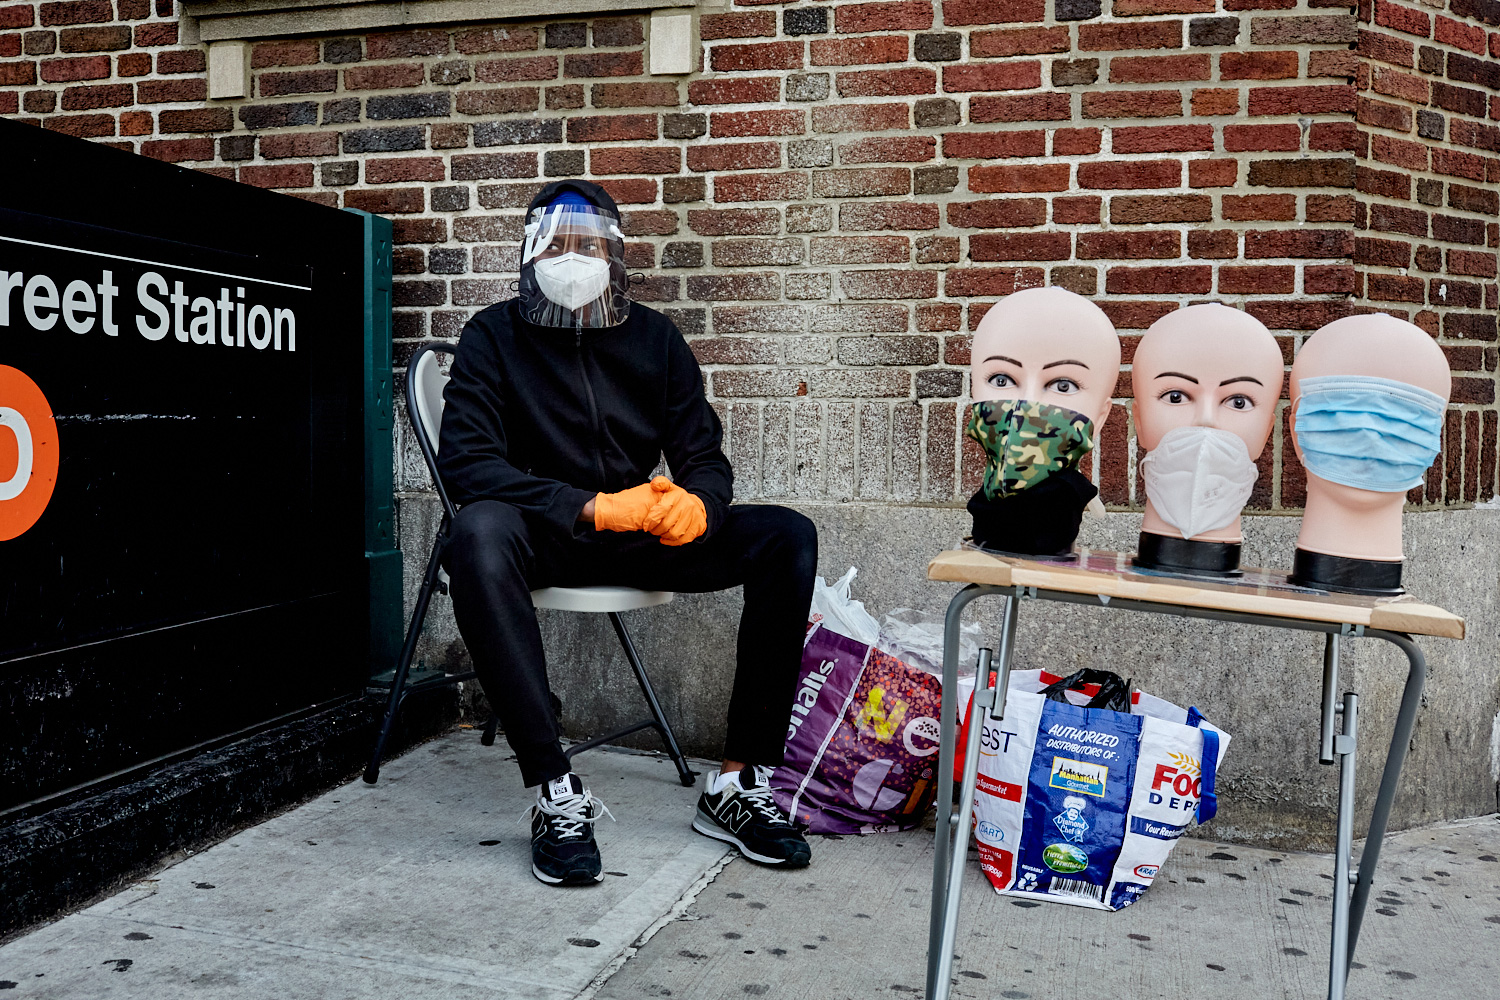 Man selling masks, sitting masked and faceshielded outside a subway station, by Stephen Speranza